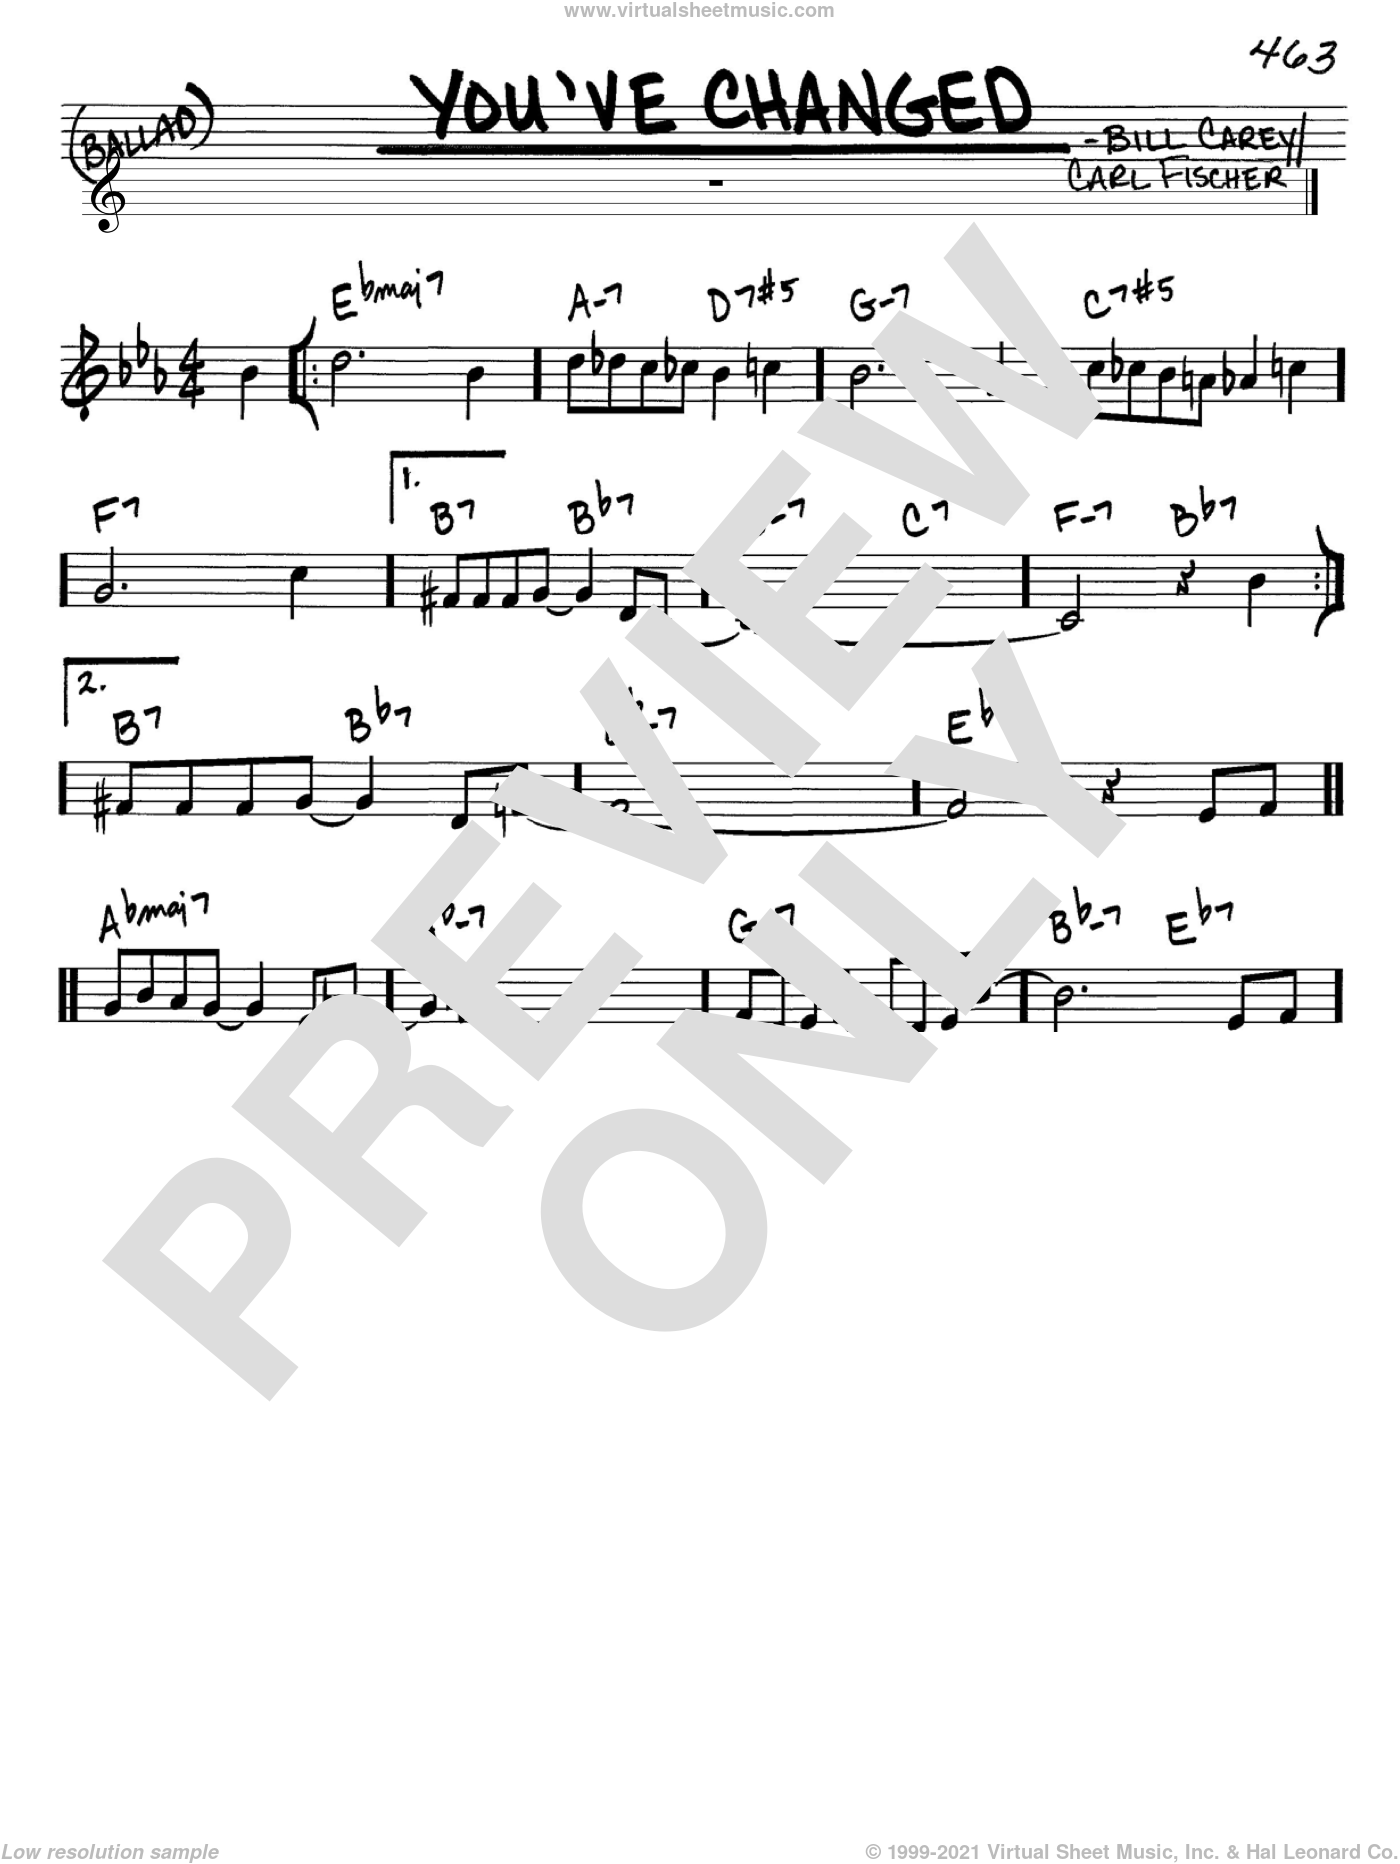 You've Changed sheet music for voice and other instruments (in C) by Carl Fischer, Connie Russell and Bill Carey, intermediate skill level